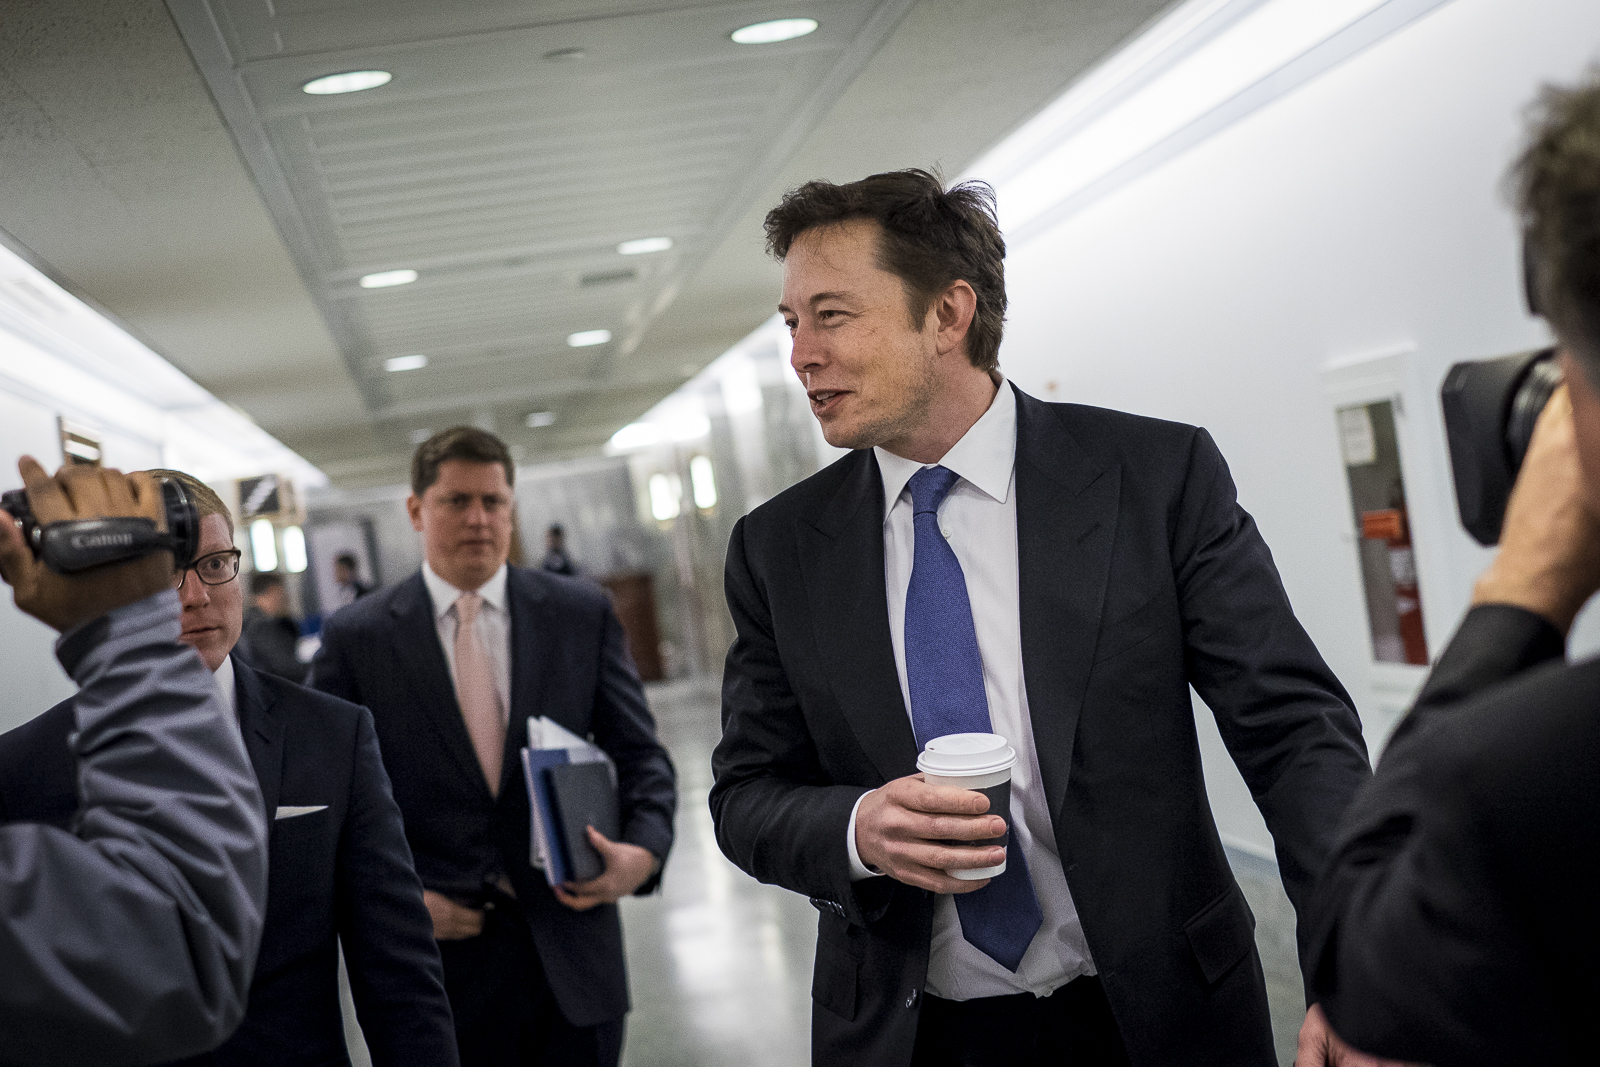 Elon Musk, CEO and chief designer of Space Exploration Technologies (SpaceX), arrives to testify at a Senate Appropriations Defense subcommittee hearing on Capitol Hill in Washington, D.C., U.S., on Wednesday, March 5, 2014. The hearing dealt with the National Security Space Launch Programs. Photo:Pete Marovich/Bloomberg